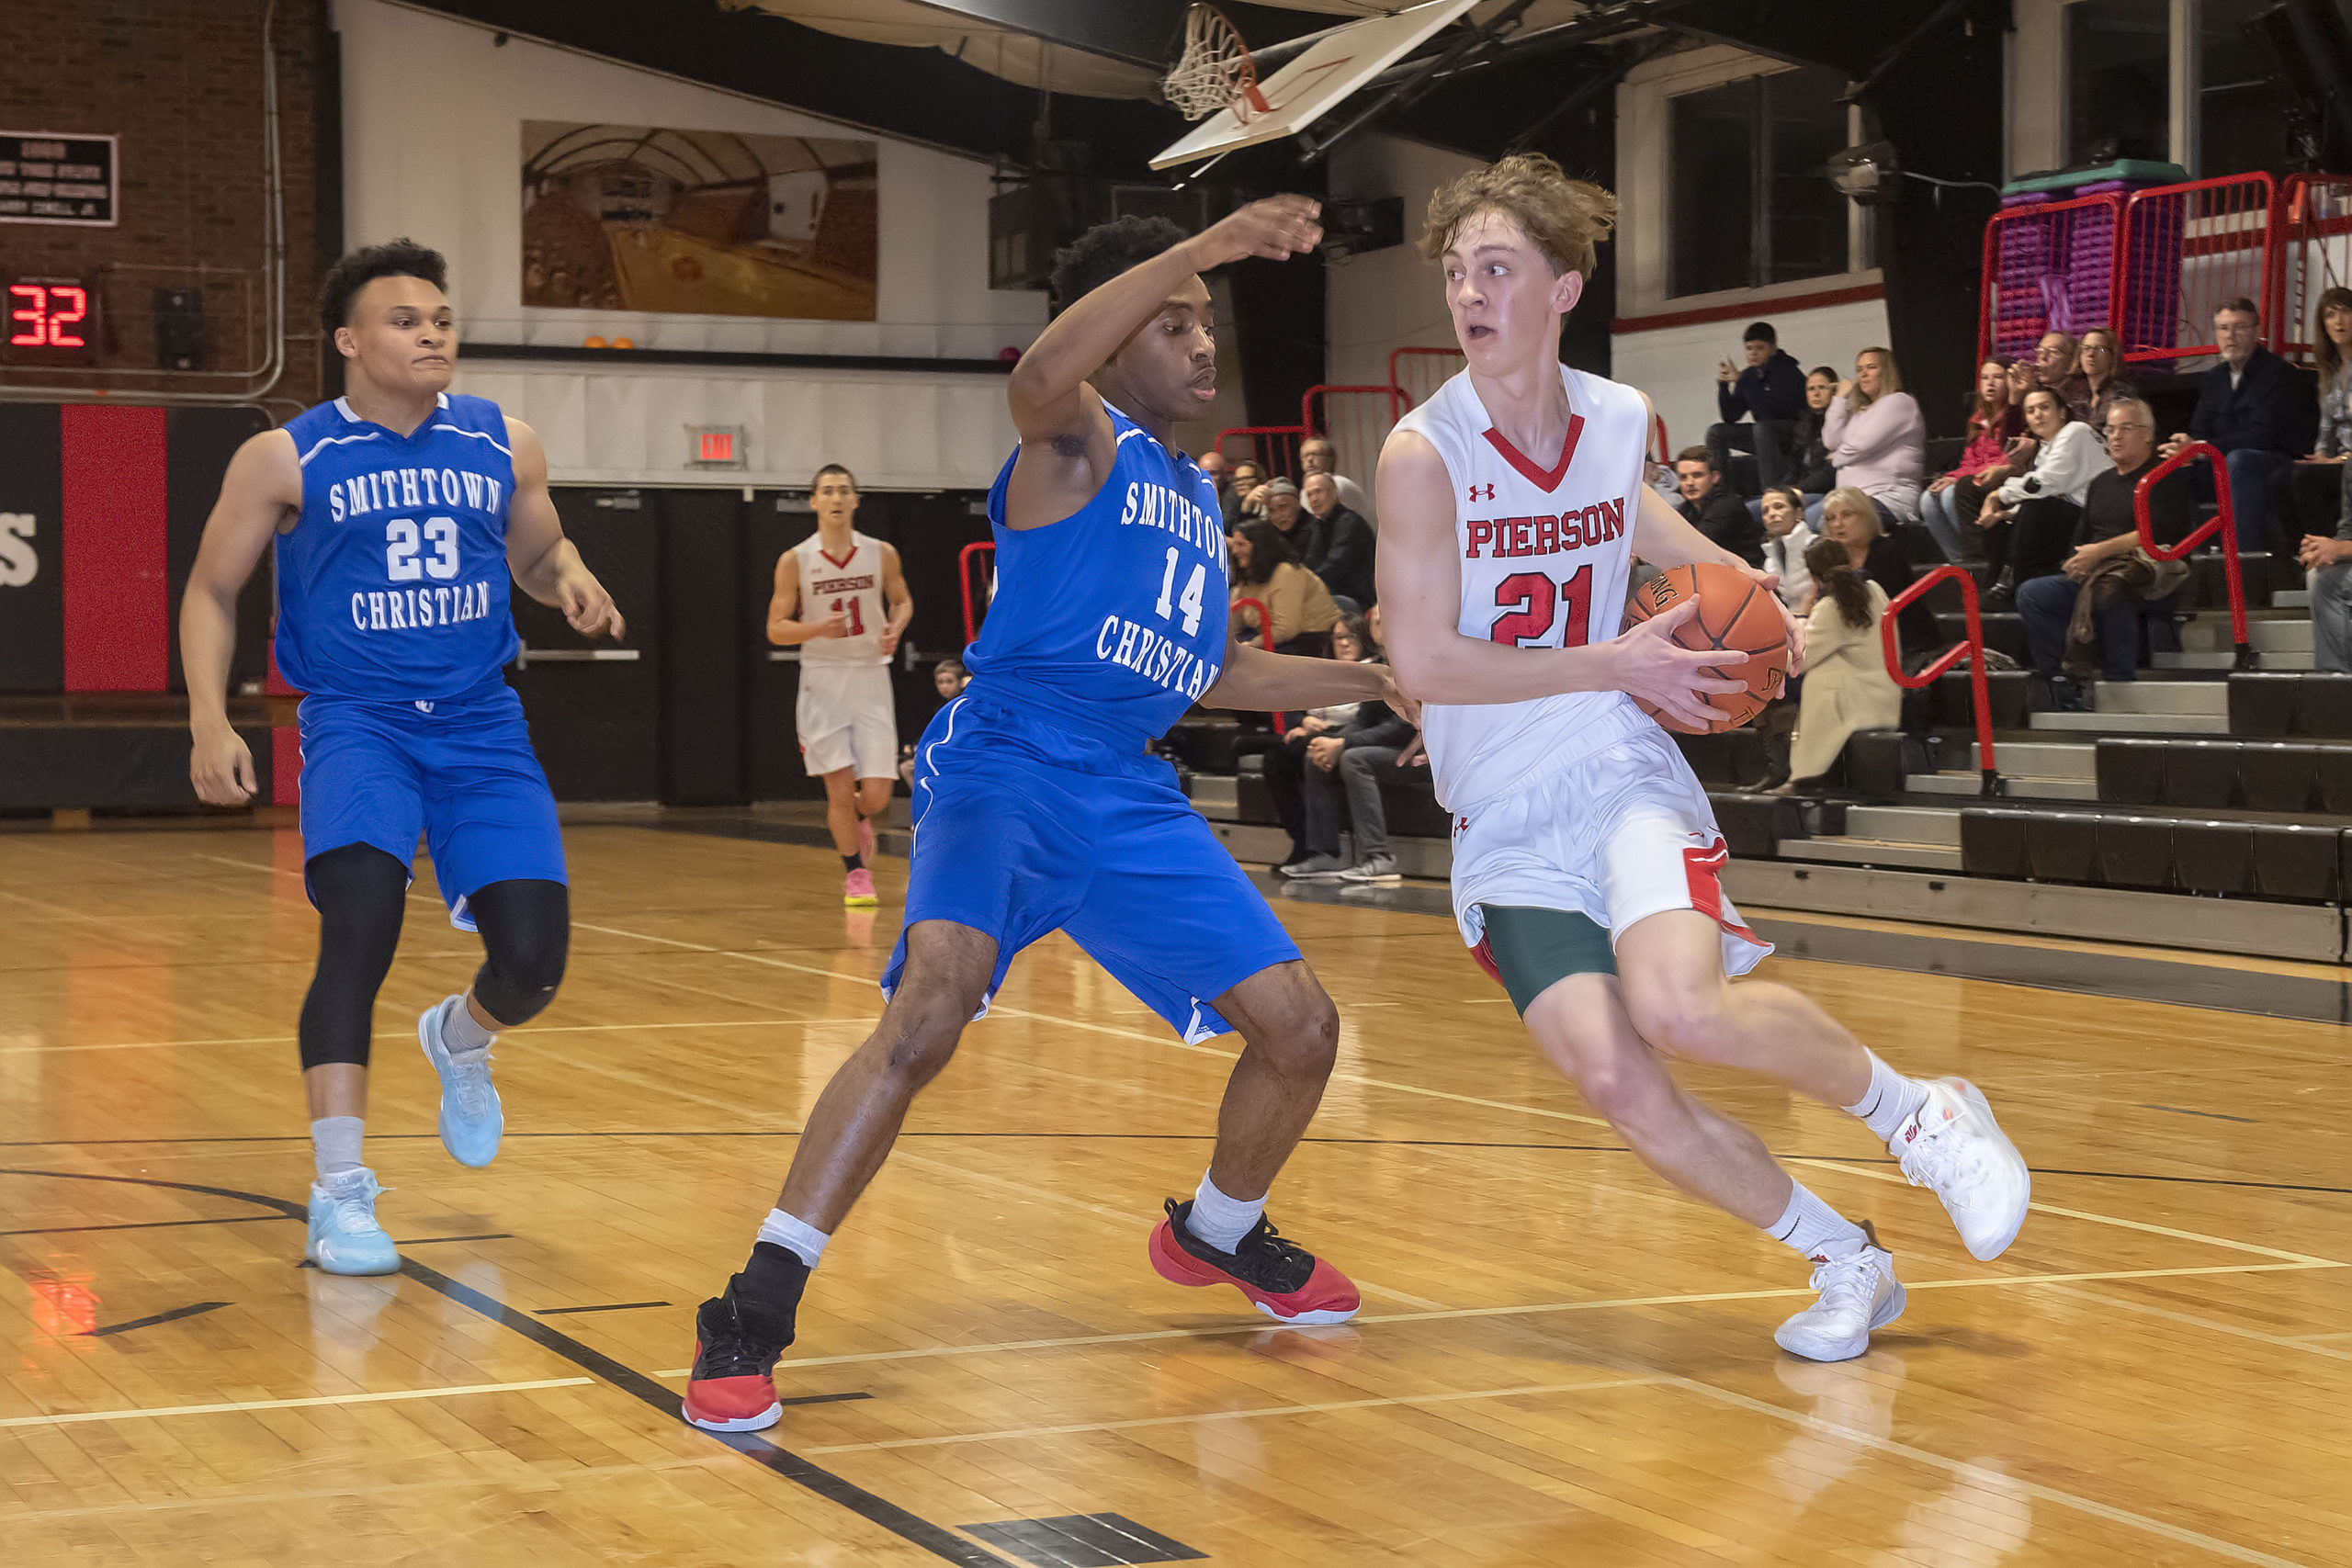 Pierson's Wilson Bennett drives to the basket against a Smithtown Christian defender on Monday night.